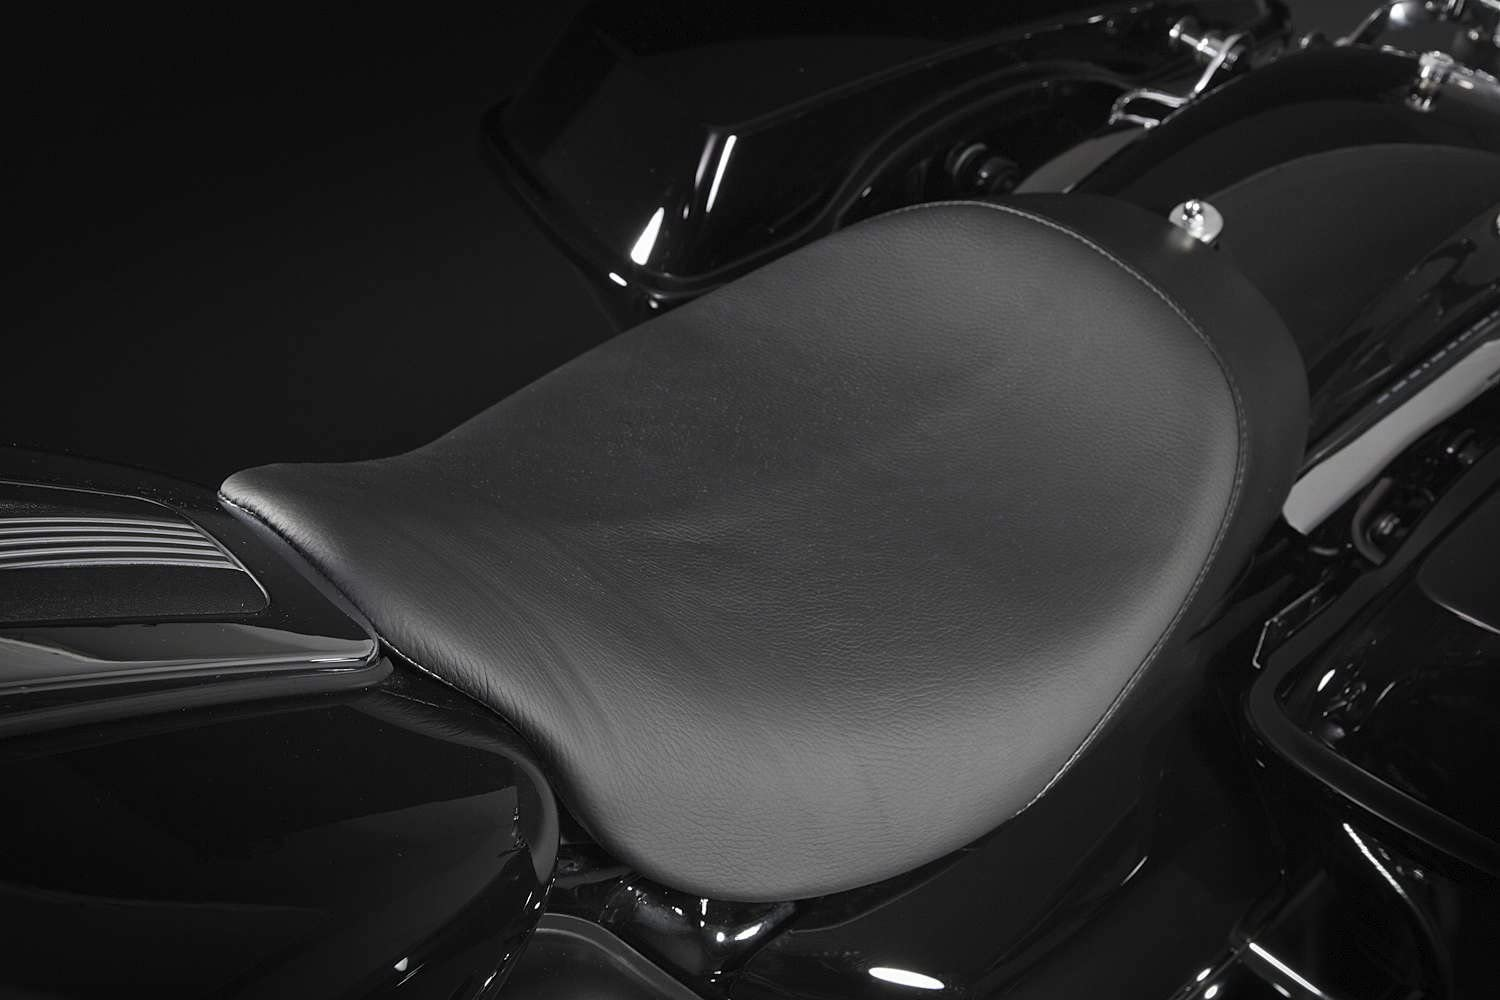 Danny Gray Buttcrack Solo Seat 20-403 Plain Smooth